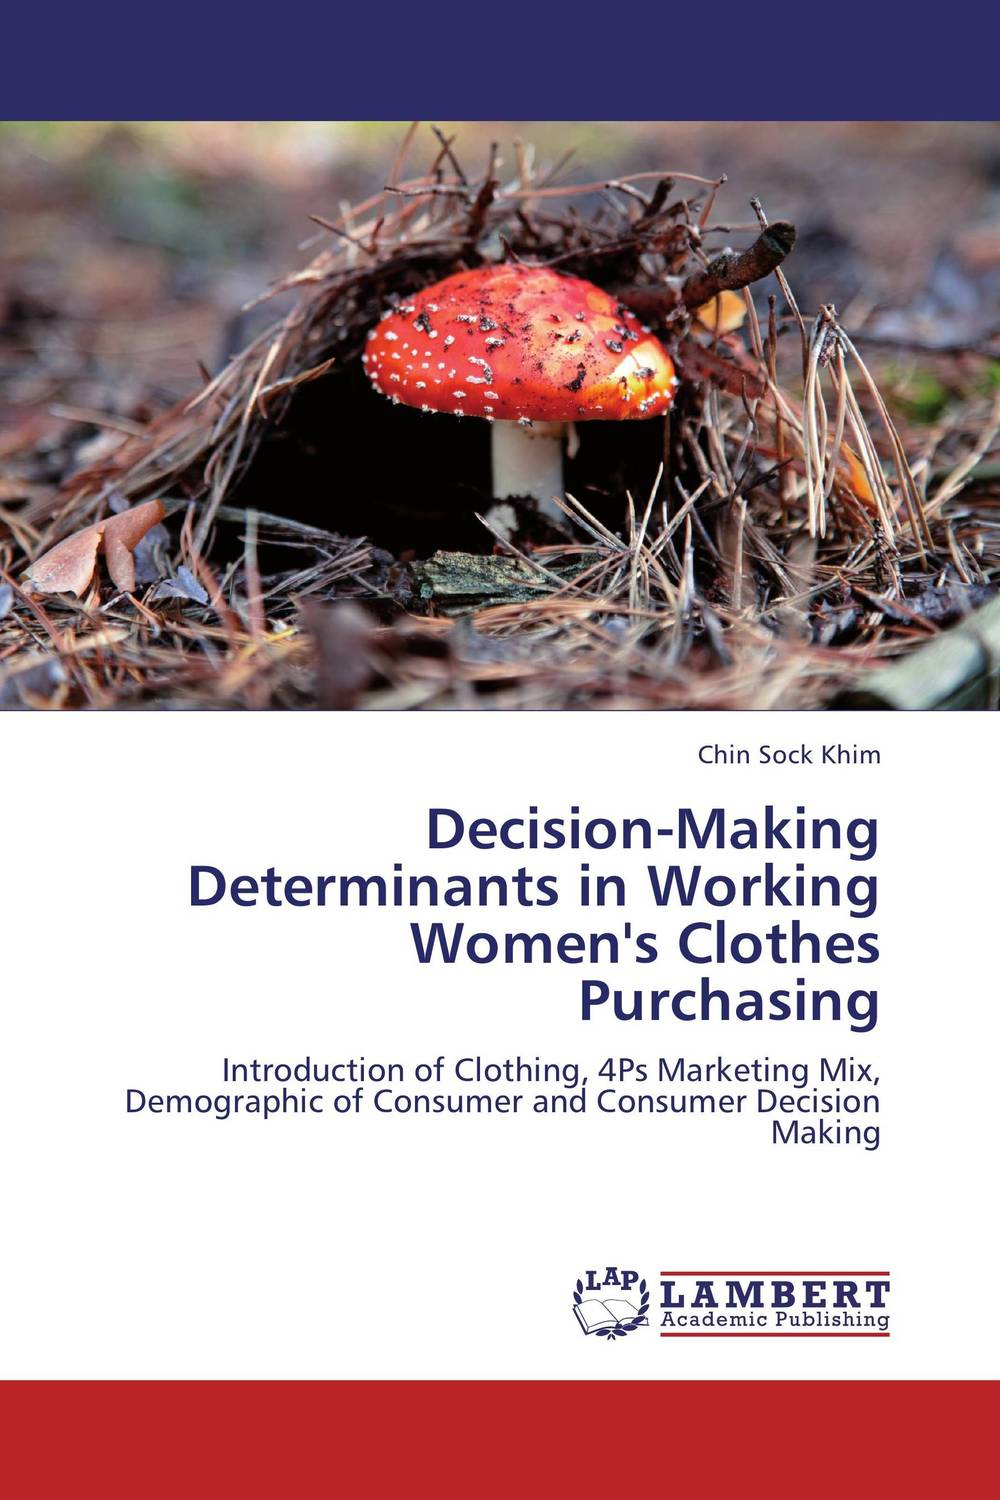 Decision-Making Determinants in Working Women's Clothes Purchasing not working